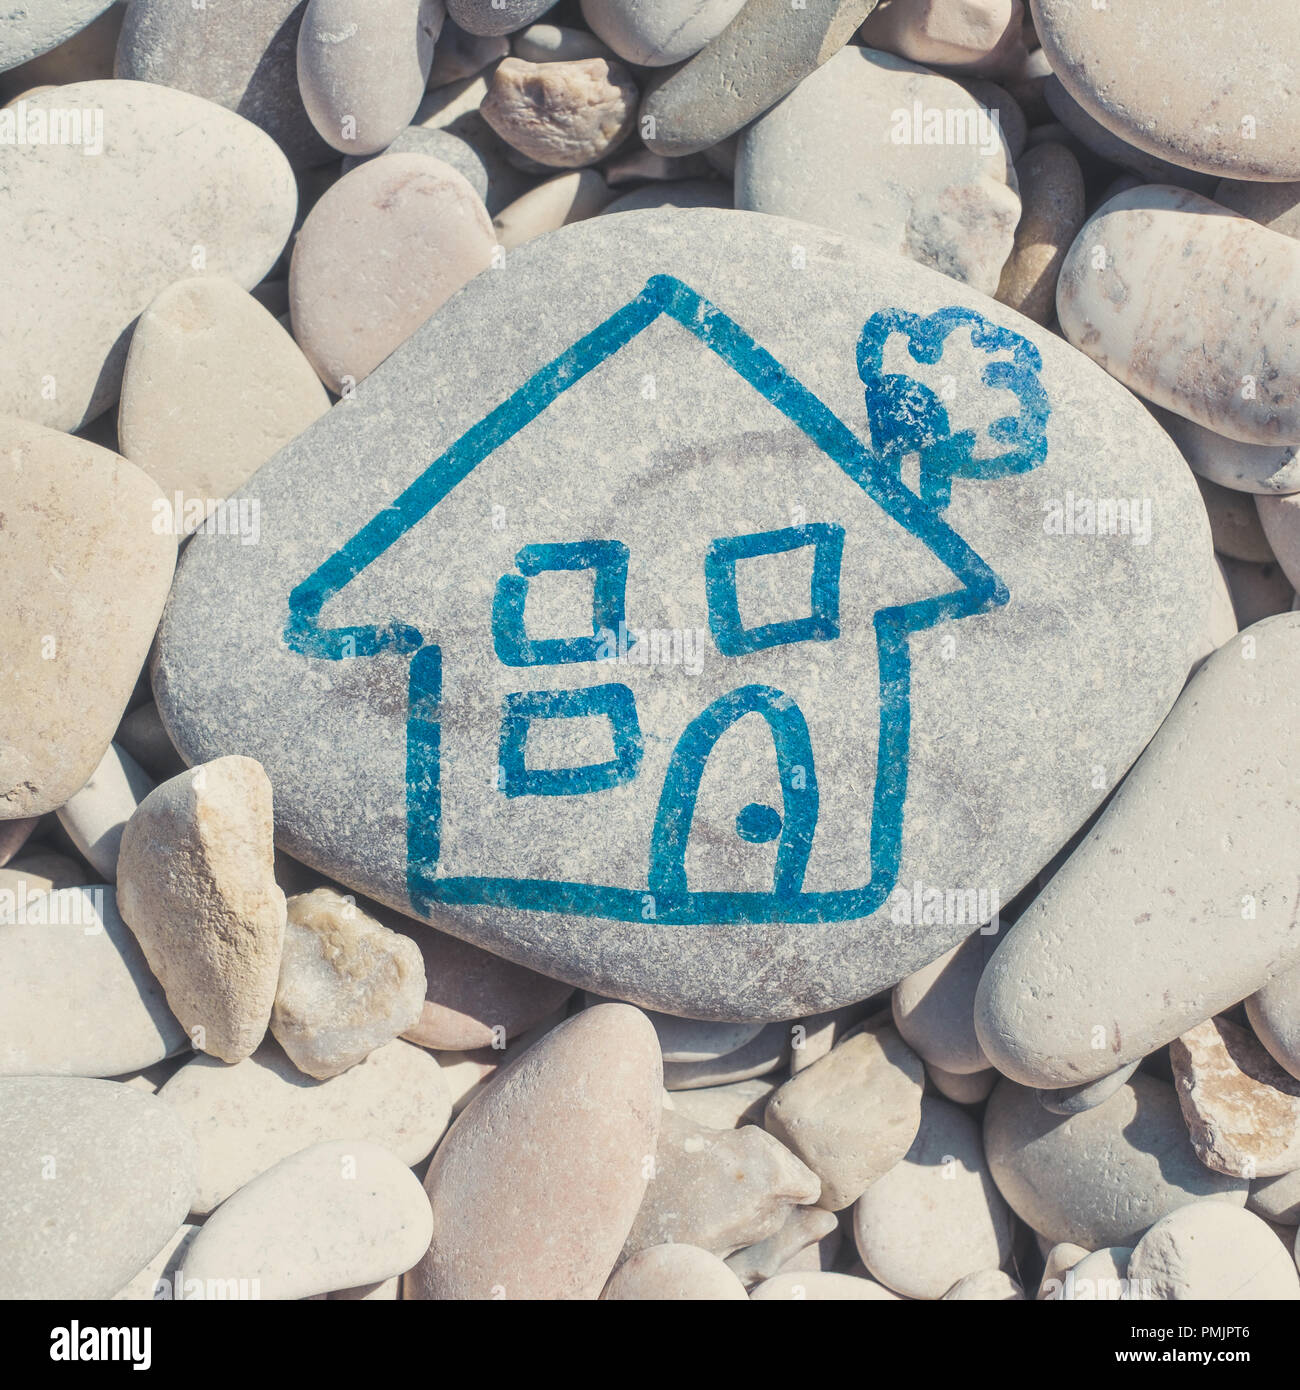 A house childlike drawn on a stone - Stock Image